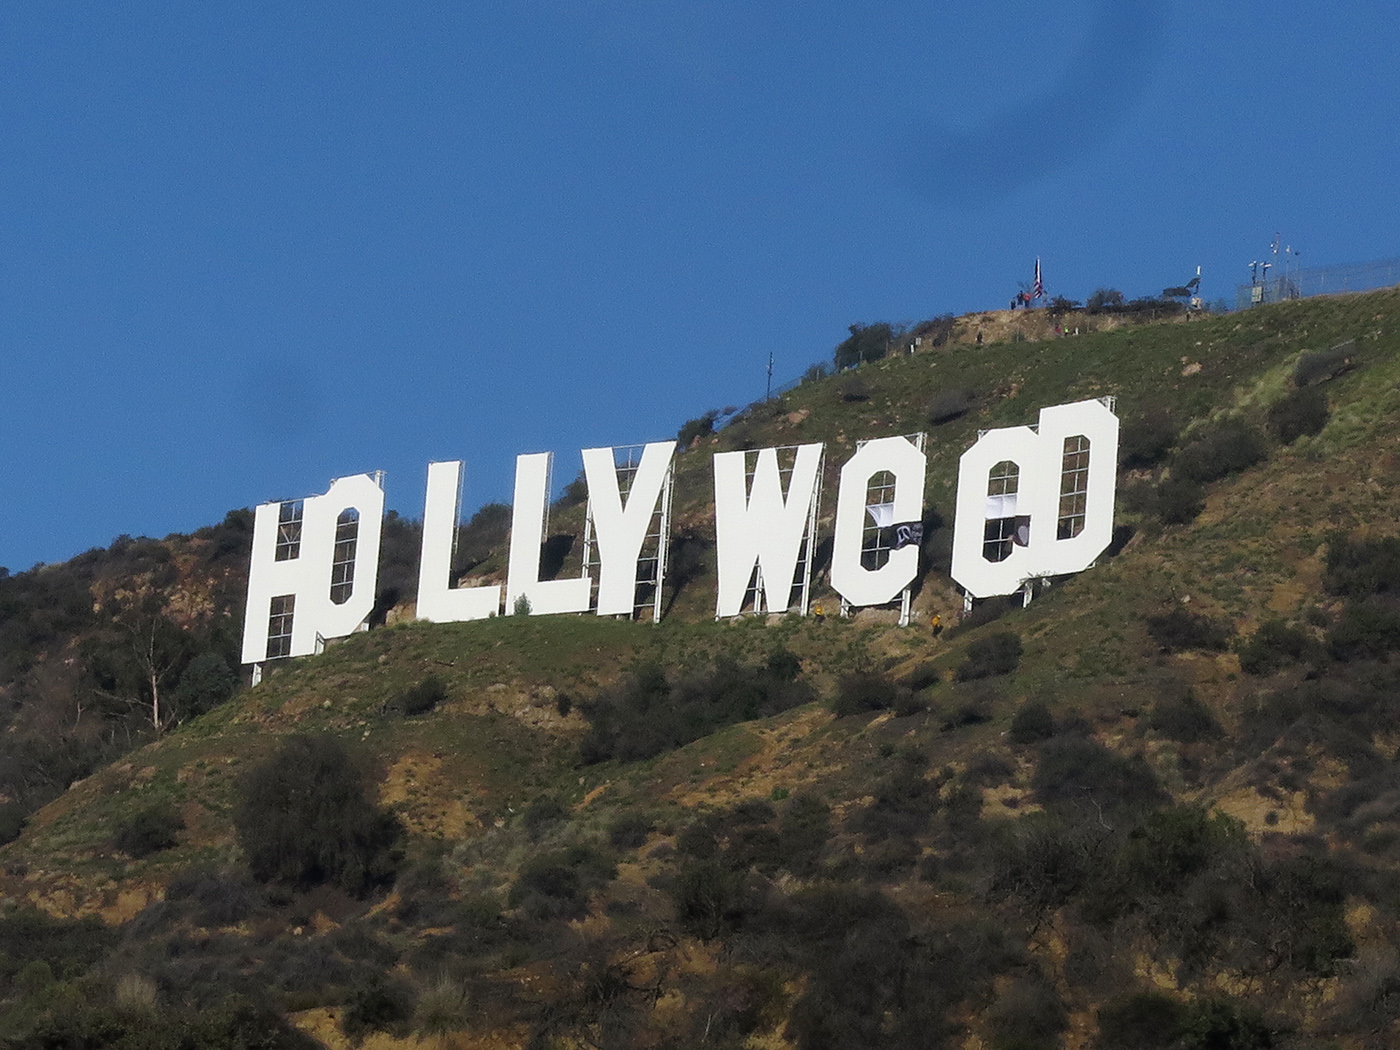 these guys claim they re responsible for the hollyweed sign vice photo by jamie lee curtis taete